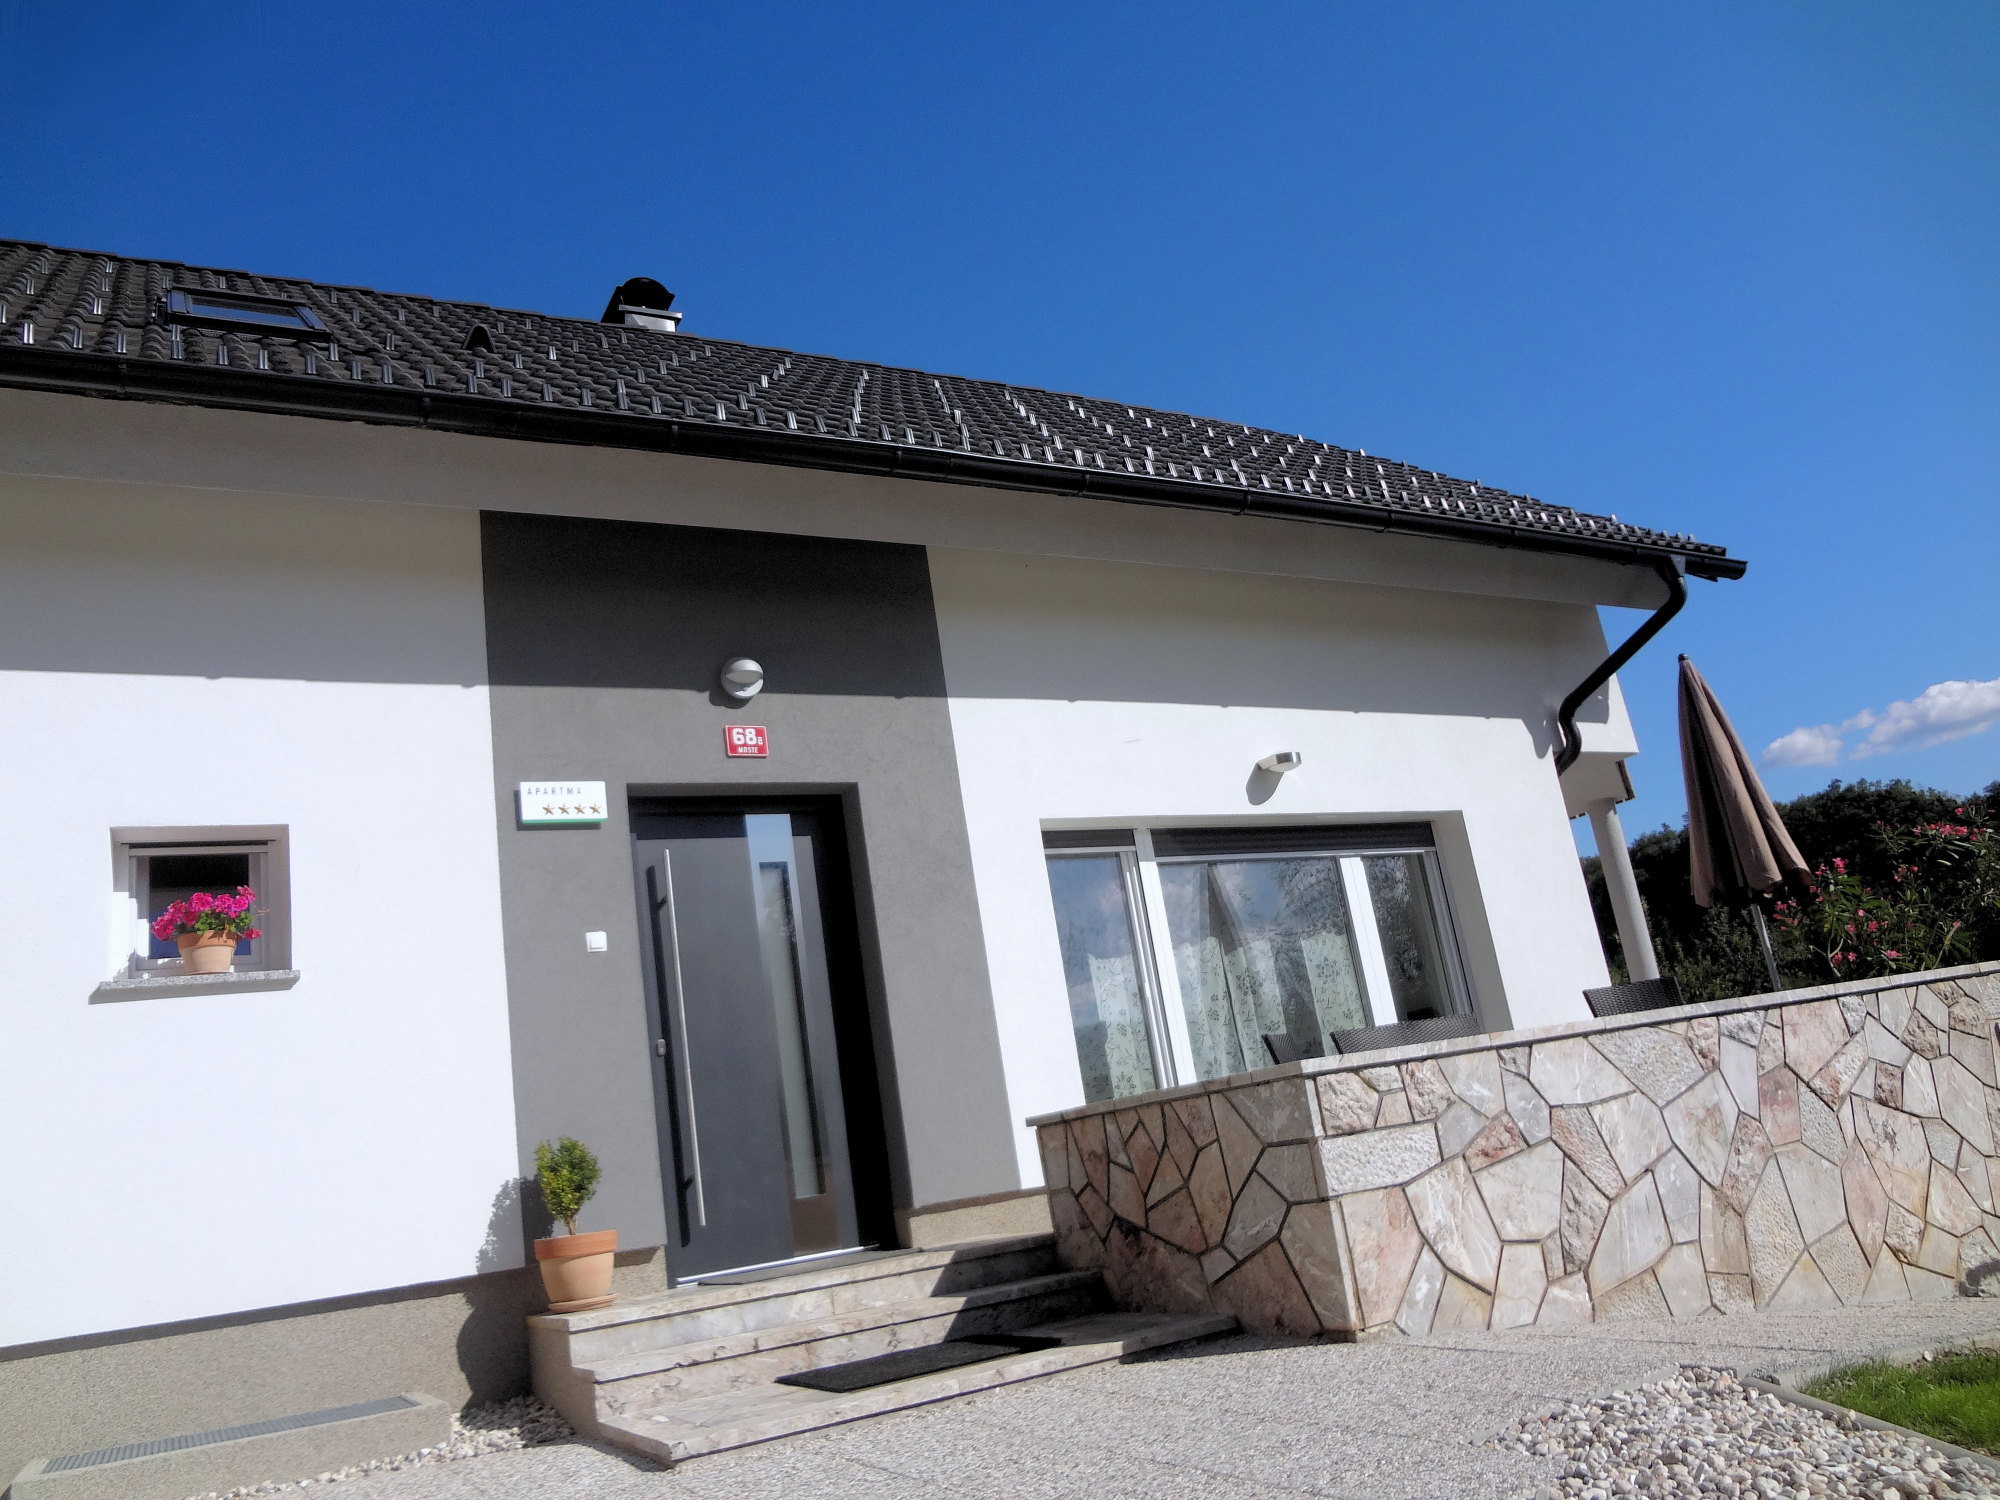 Entrance and balcony of Apartments Fine Stay in the Gorenjska region of Slovenia